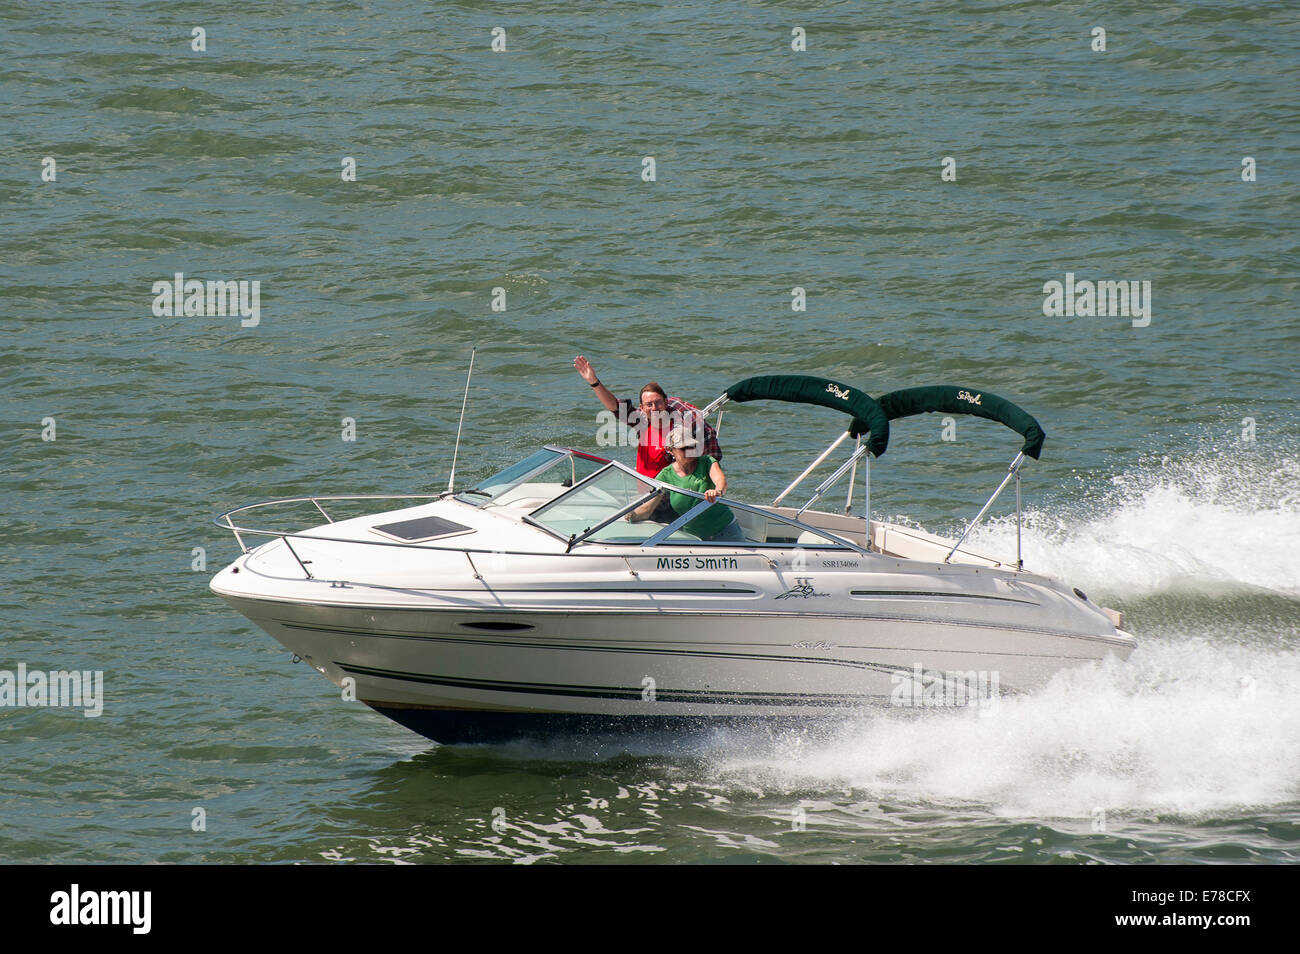 Couple enjoying an afternoon out in a speedboat. Stock Photo